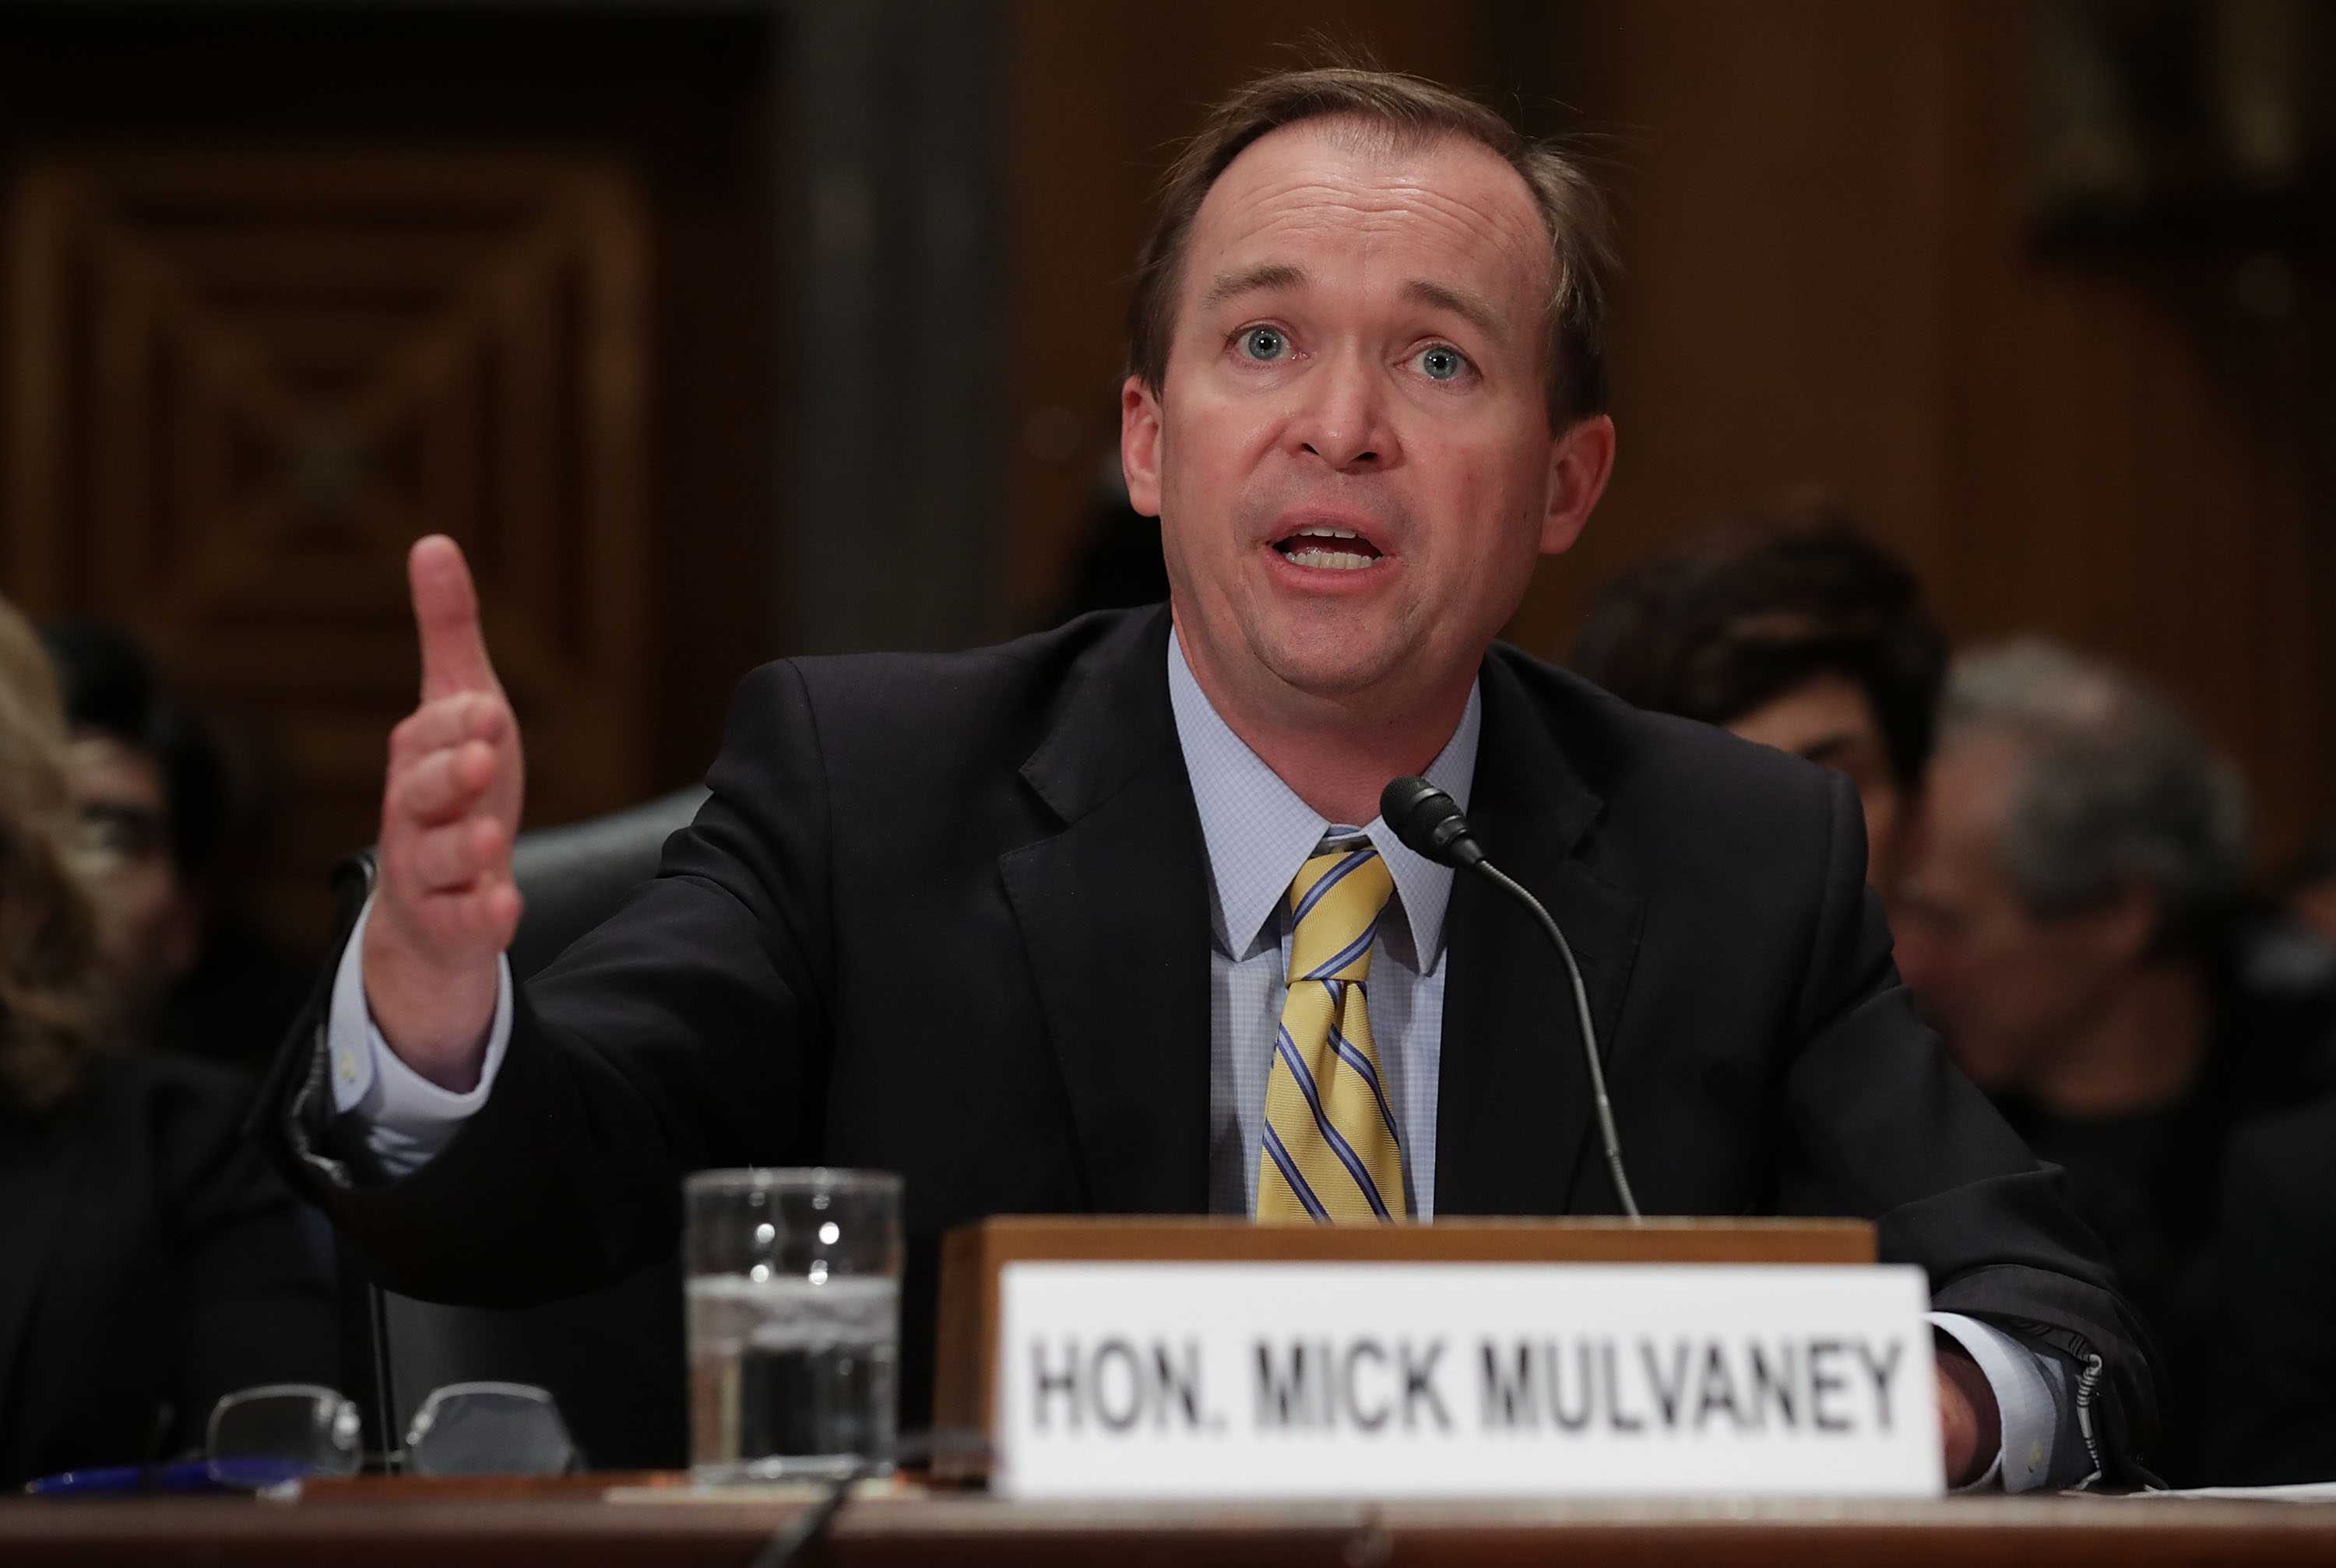 Rep. Mick Mulvaney Attends Senate Confirmation Hearing For Him To Be Director Of Office Of Management And Budget